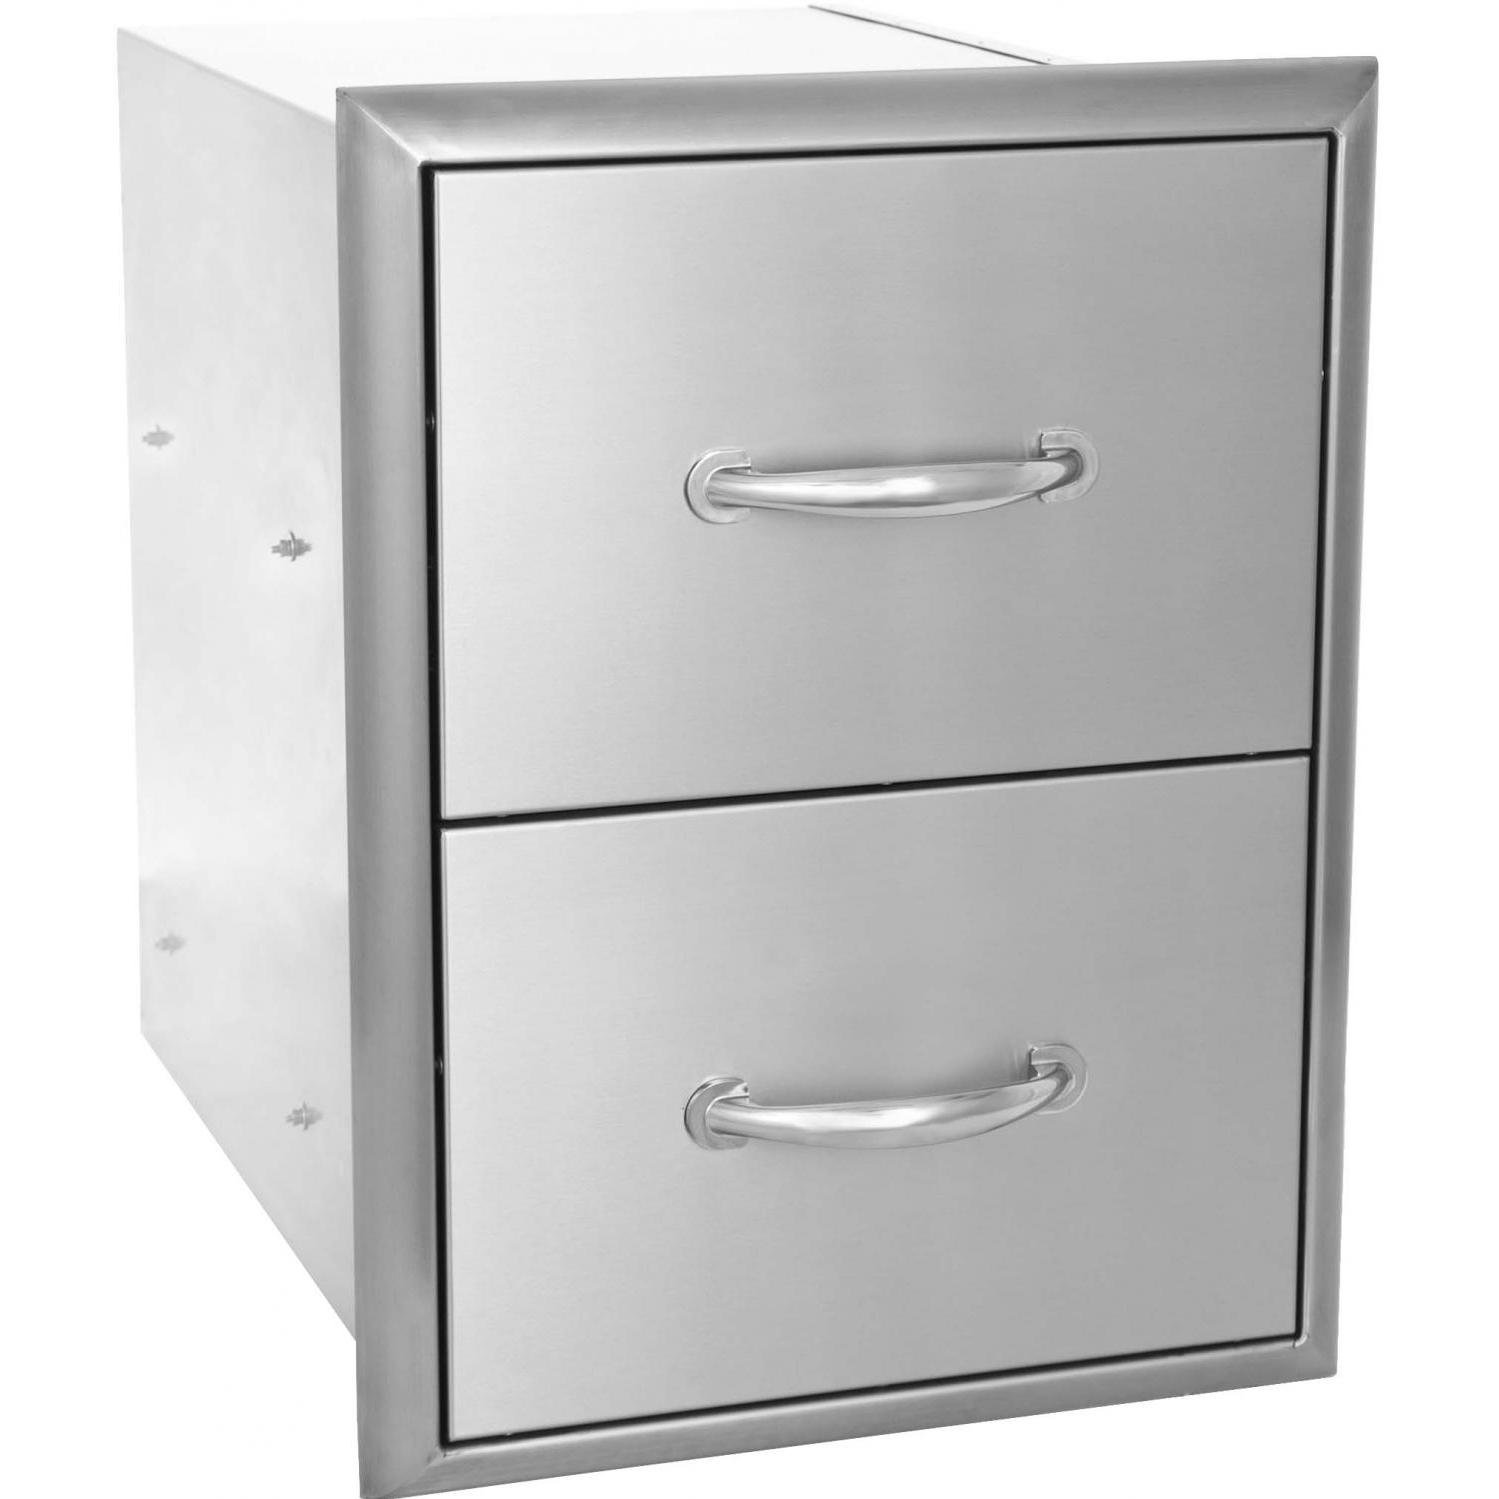 Double Access Drawer